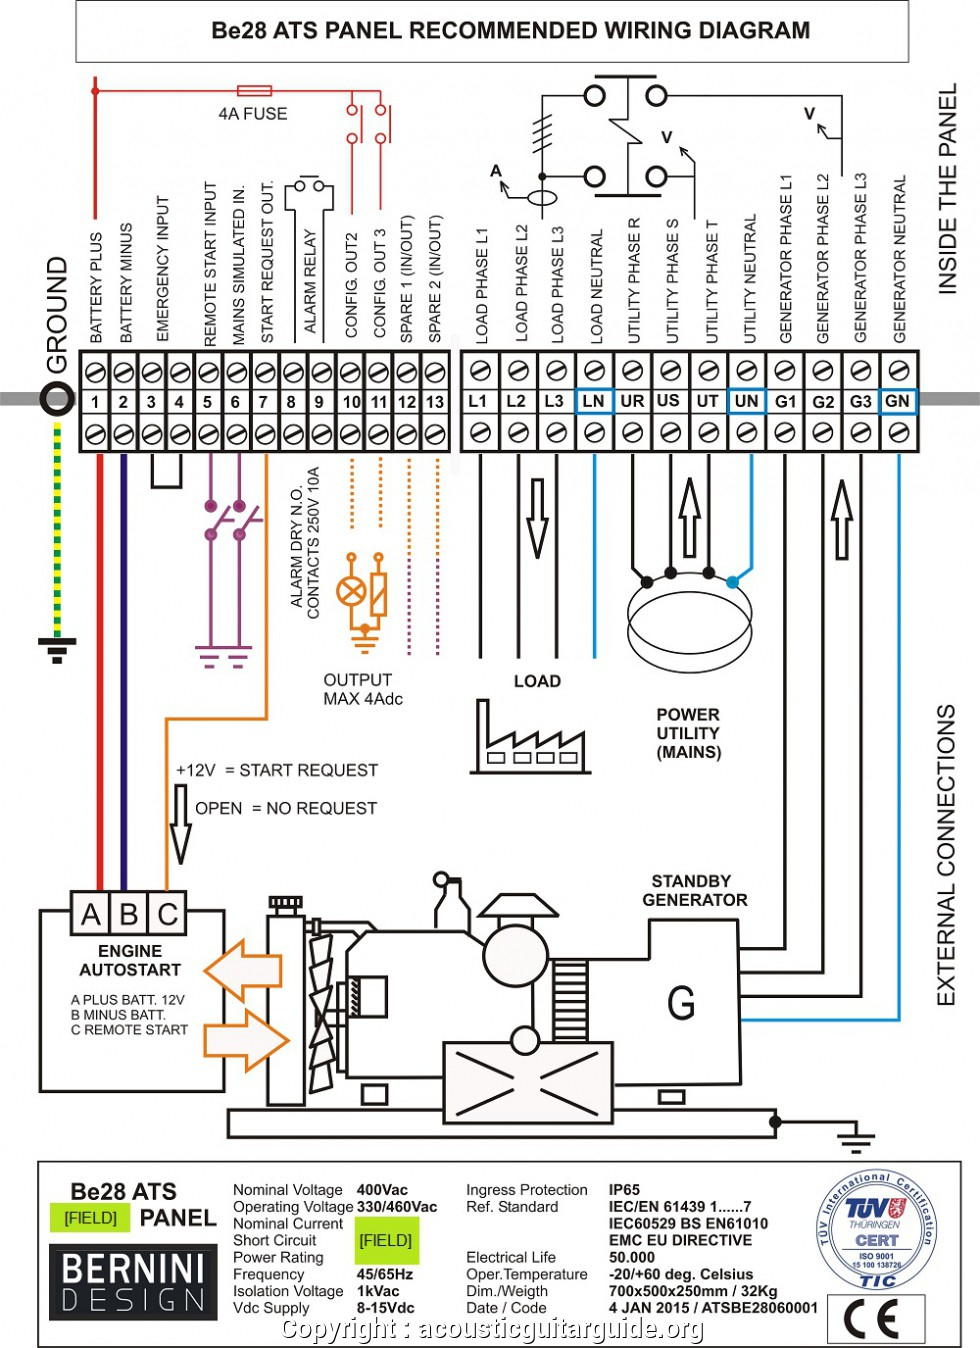 Kohler Ats Wiring Diagram | Wiring Diagram - Kohler Command Wiring Diagram